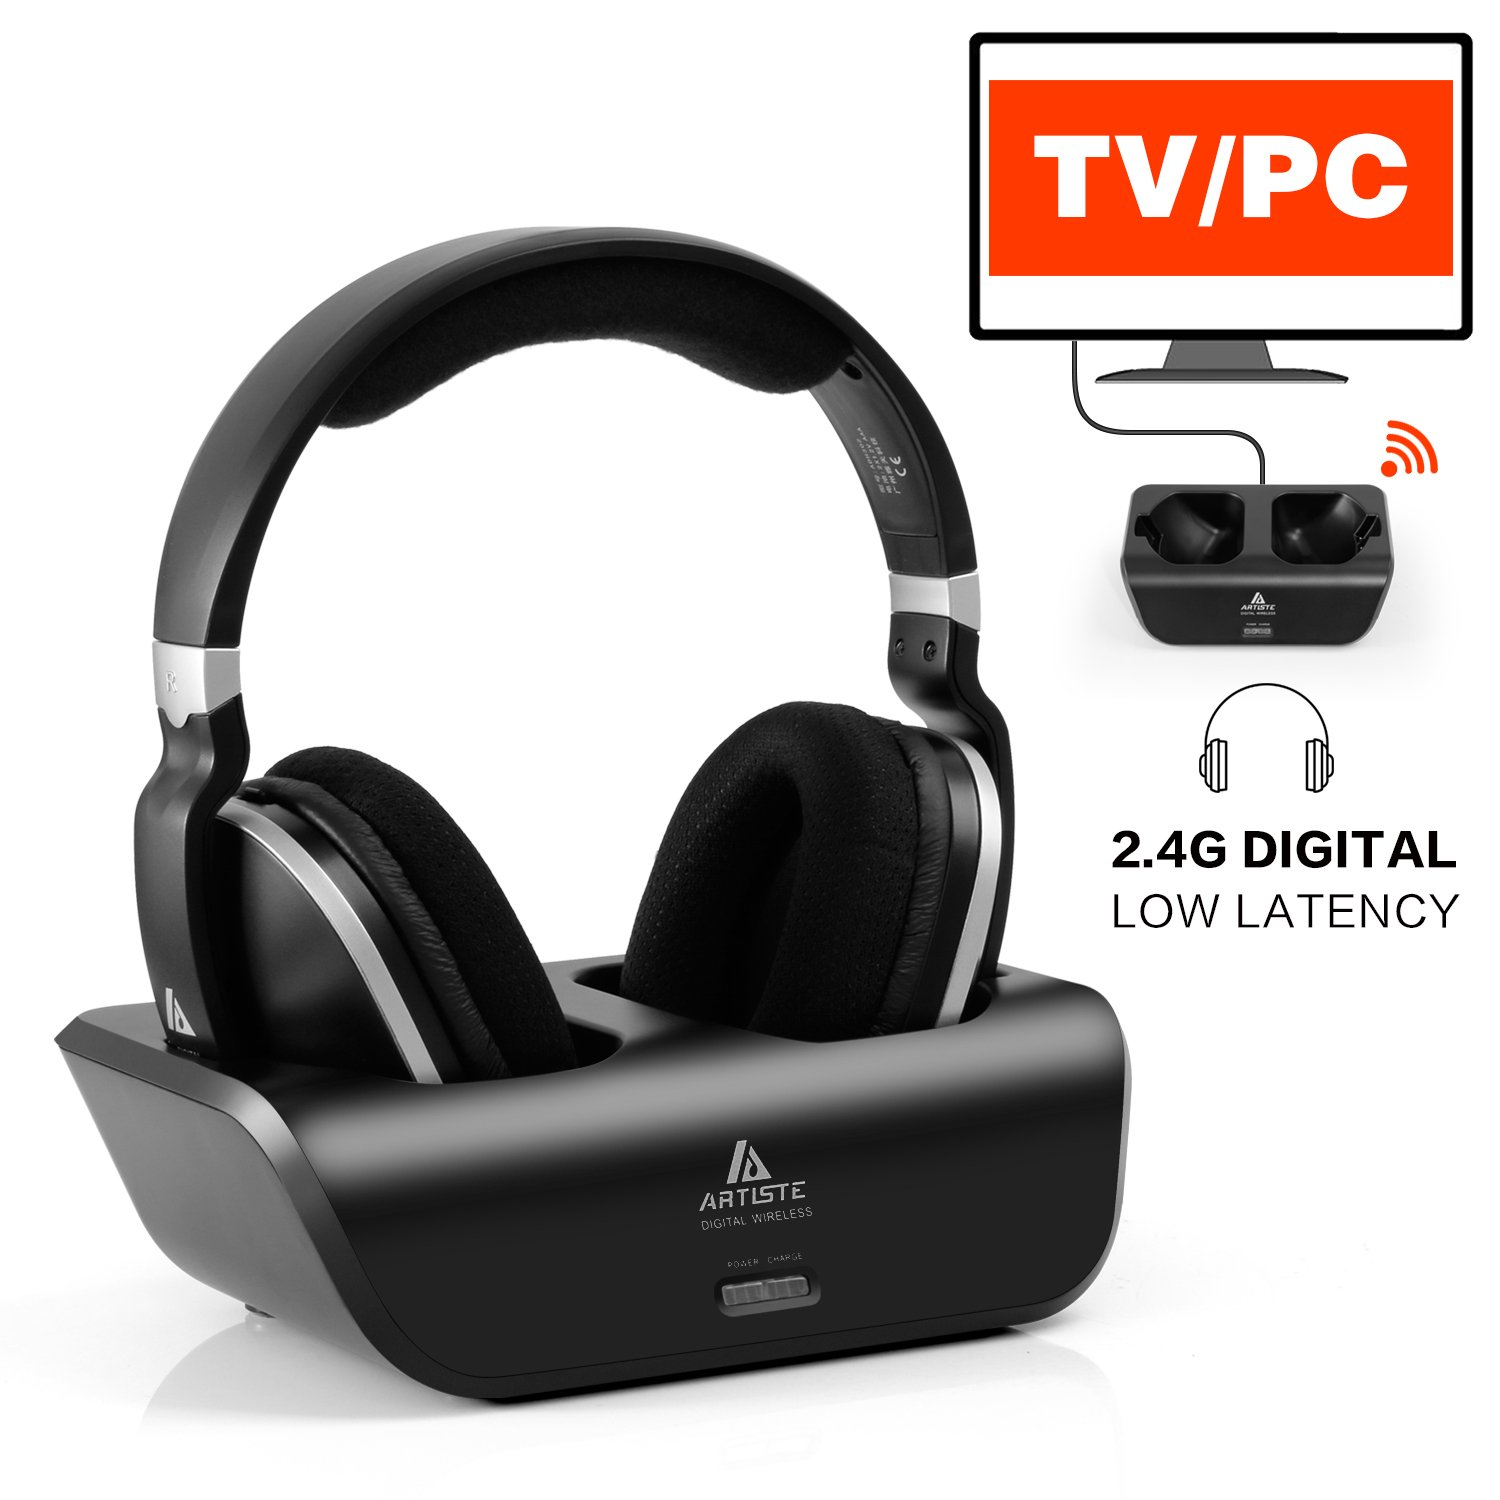 Wireless TV Headphones Over Ear Headsets - Digital Stereo Headsets with 2.4GHz RF Transmitter, Charging Dock, 100ft Wireless Range and Rechargeable 20 Hour Battery, Black by ARTISTE